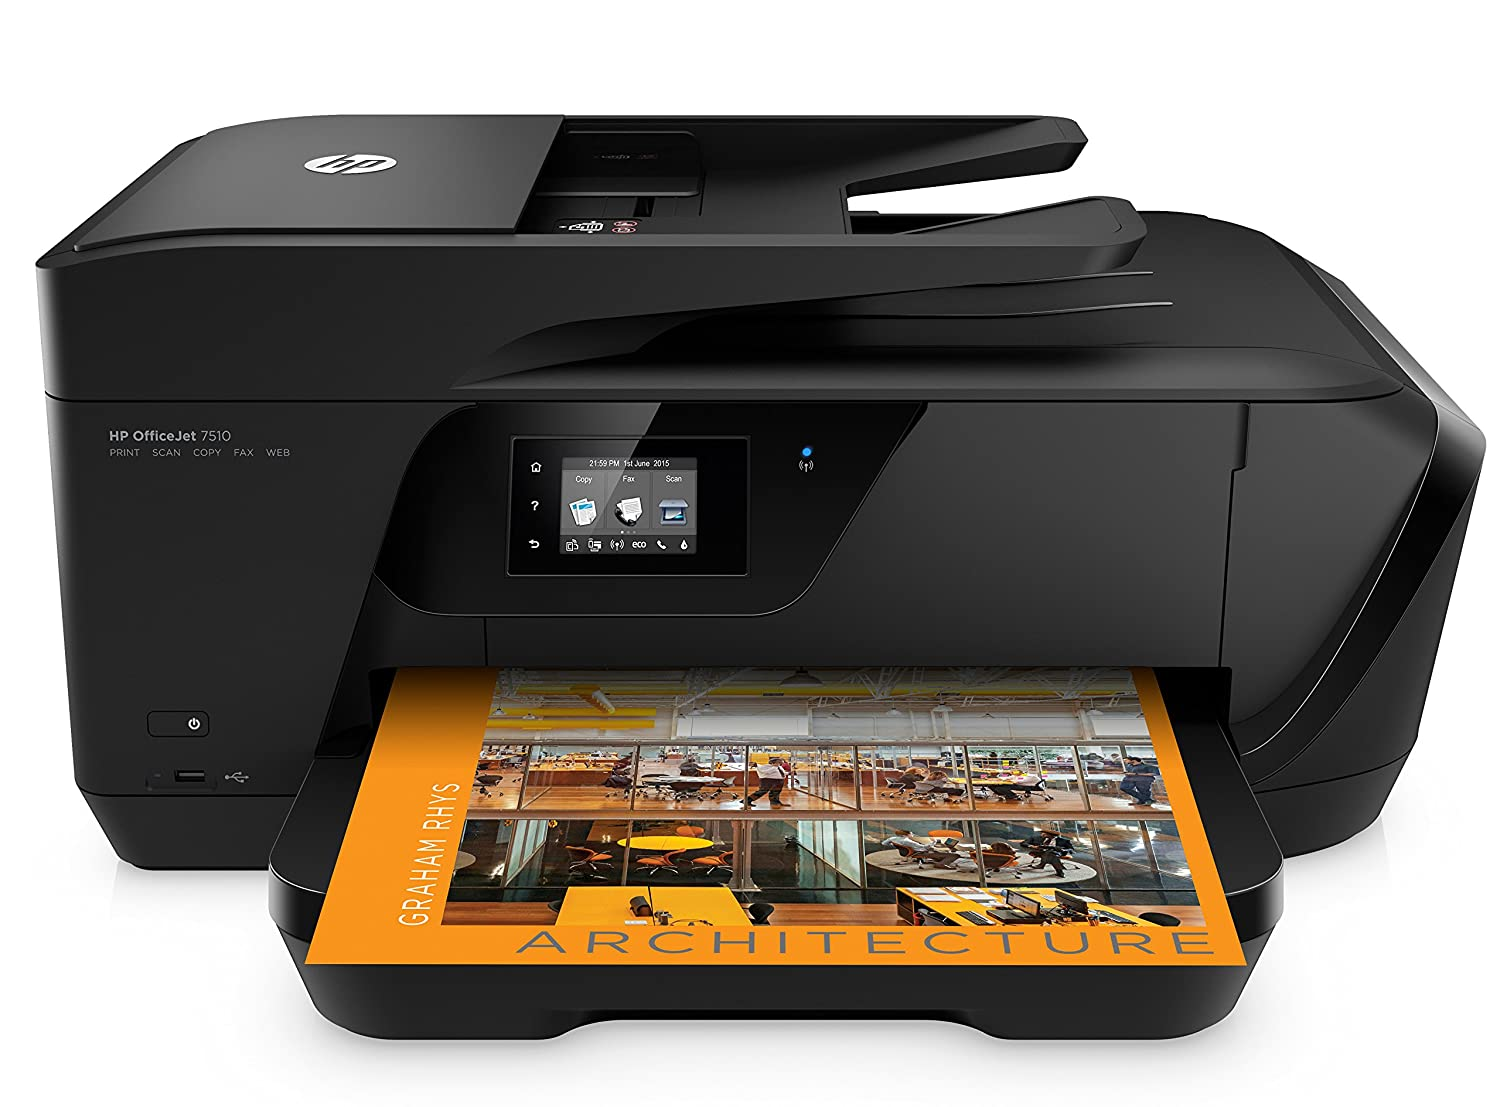 HP Officejet 7612 Stampante e-All-In-One, per Grandi Formati, Nero G1X85A 7612a A3 Stampanti